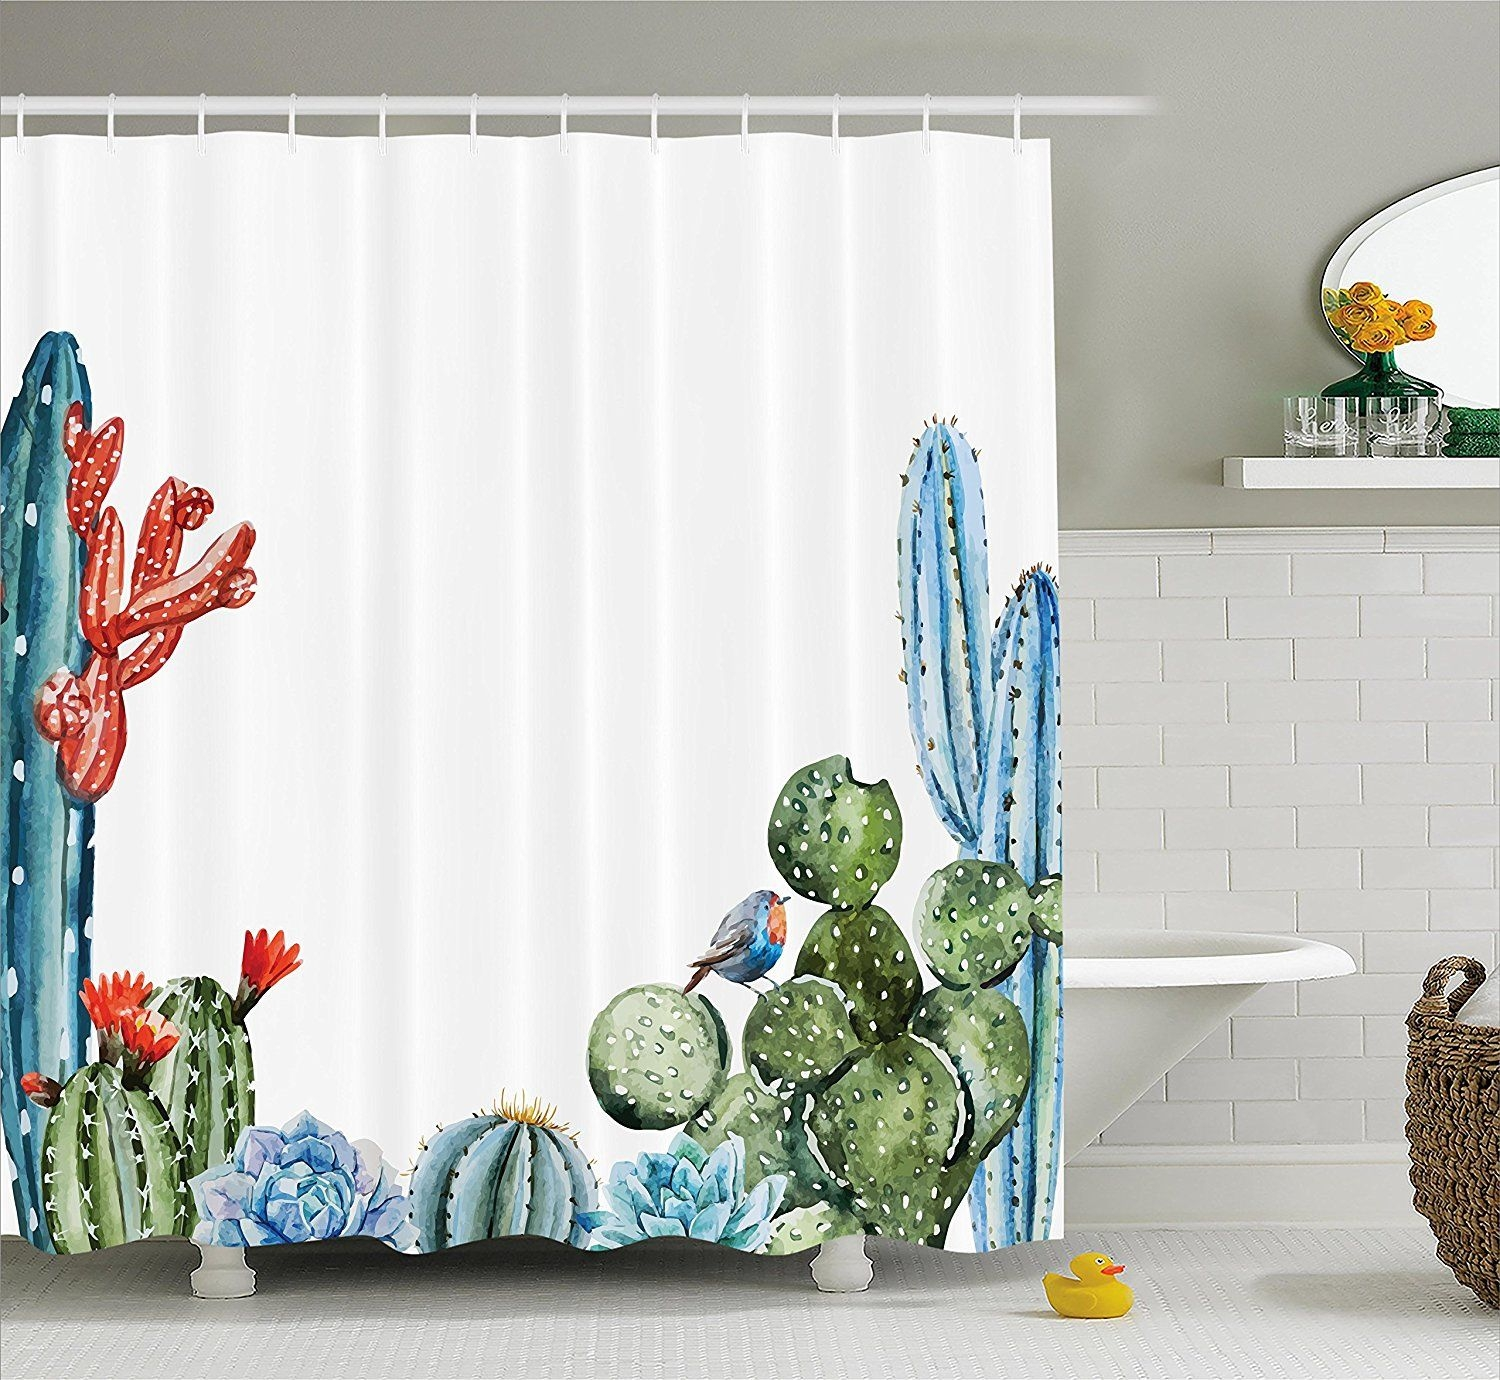 Cactus Decor Shower Curtain Cactus Spikes Flowers With Birds Cartoon Vintage Like Colored